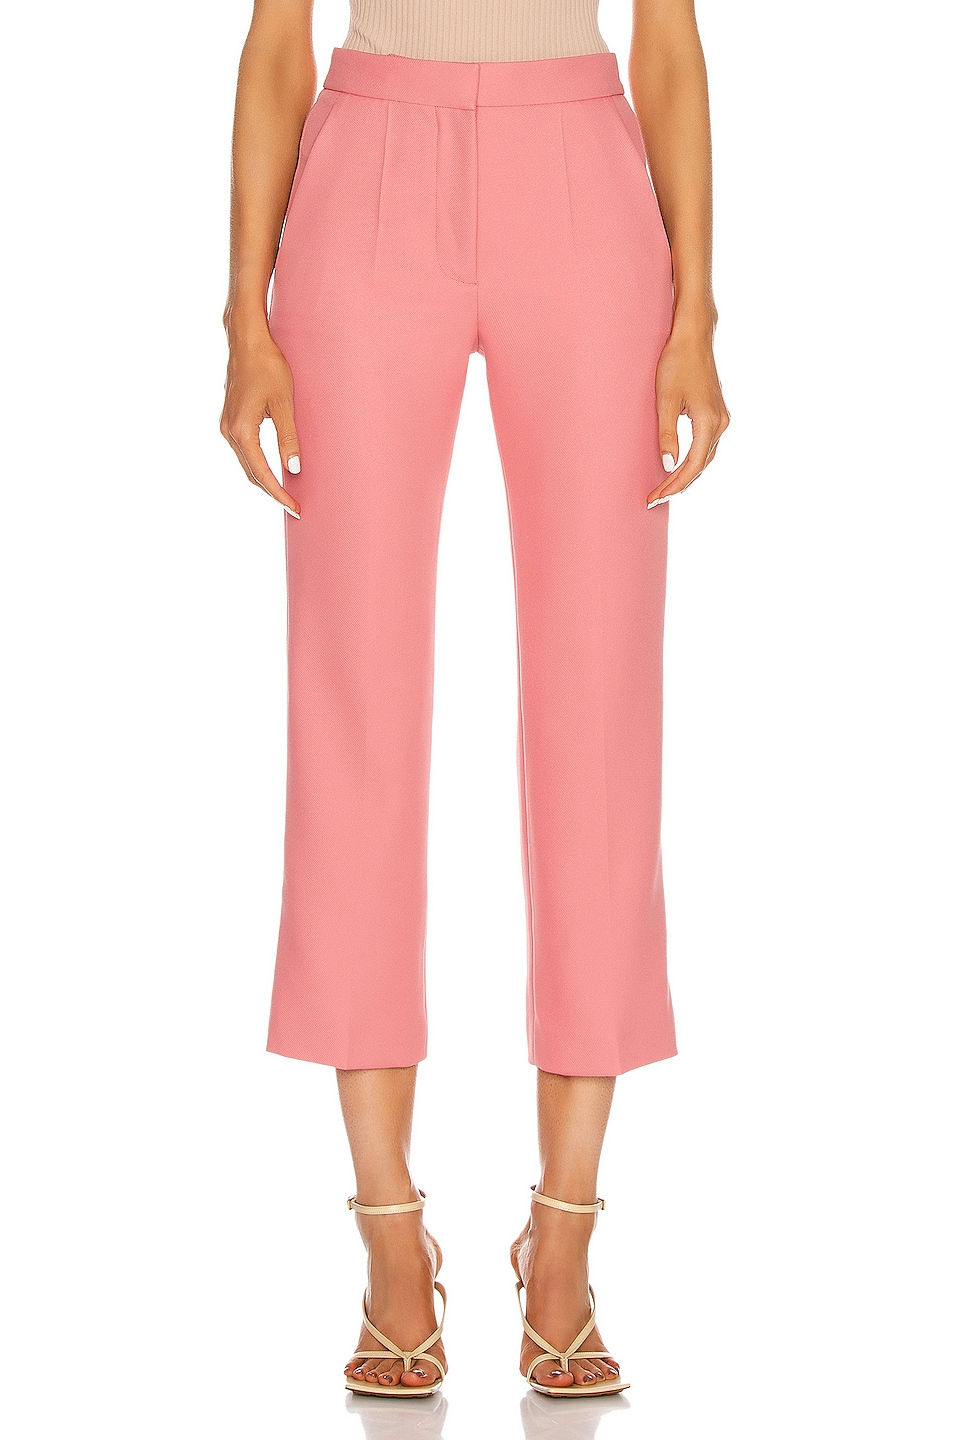 Image 1 of Stella McCartney Carlie Tailored Pant in Pink Frappe